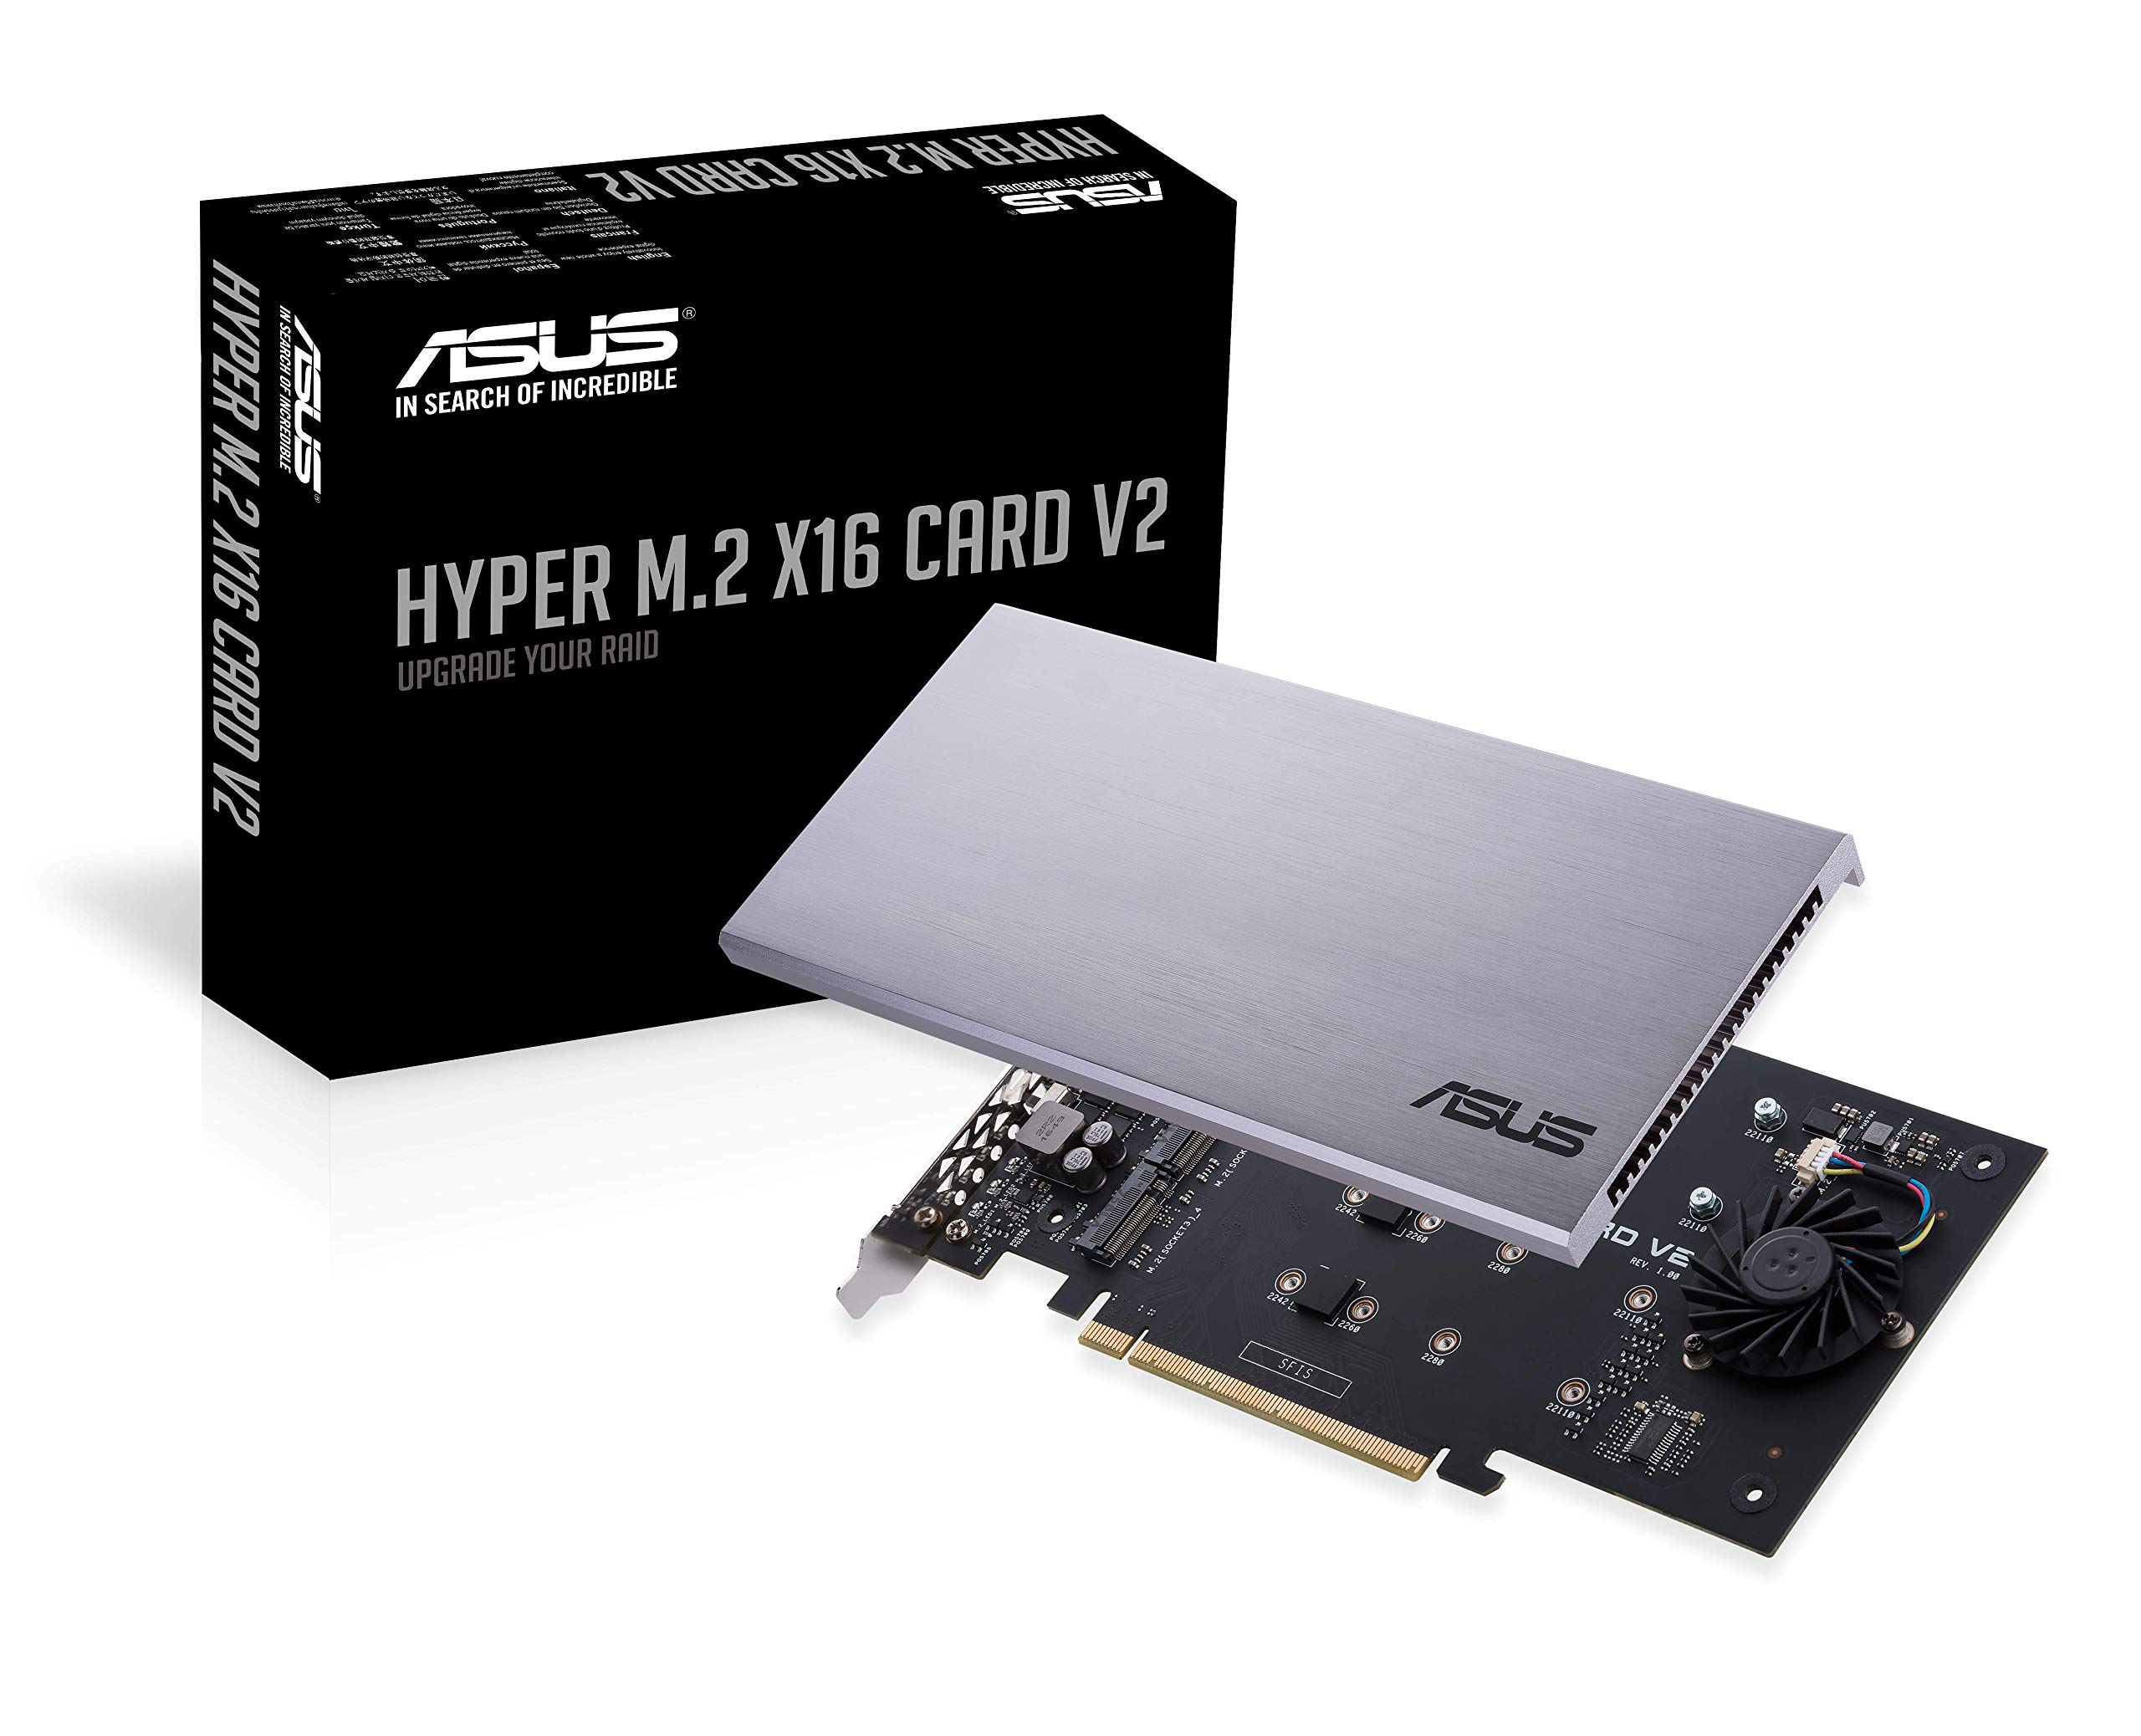 ASUS Hyper M.2 X16 PCIe 3.0 X4 Expansion Card V2 Supports 4 NVMe M.2 (2242/2260/2280/22110) Up to 128 Gbps for Intel VROC and AMD Ryzen Threadripper NVMe RAID by ASUS